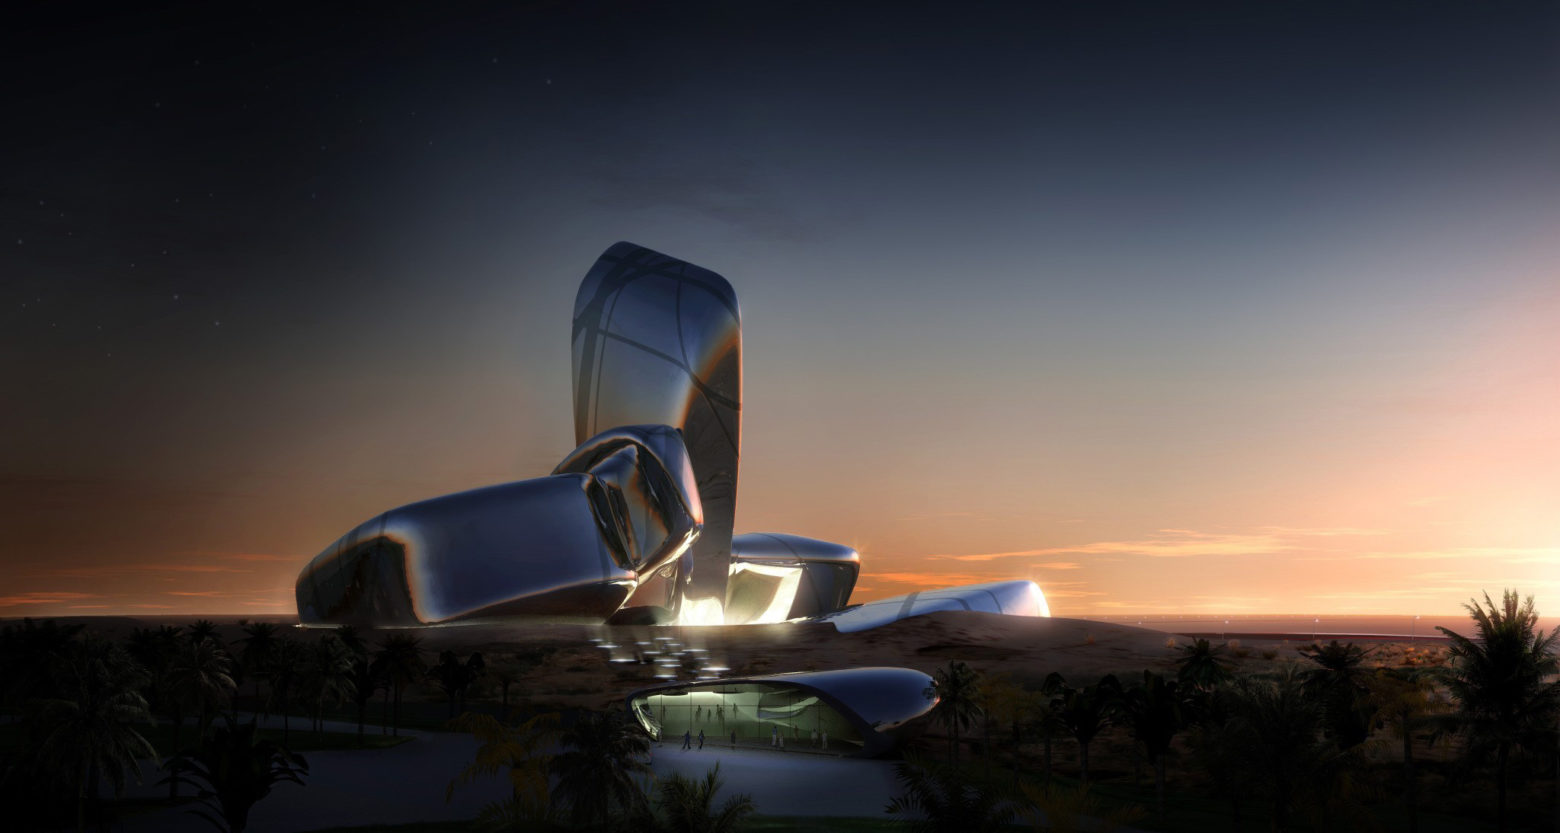 New museum the King Abdulaziz Centre for World Culture